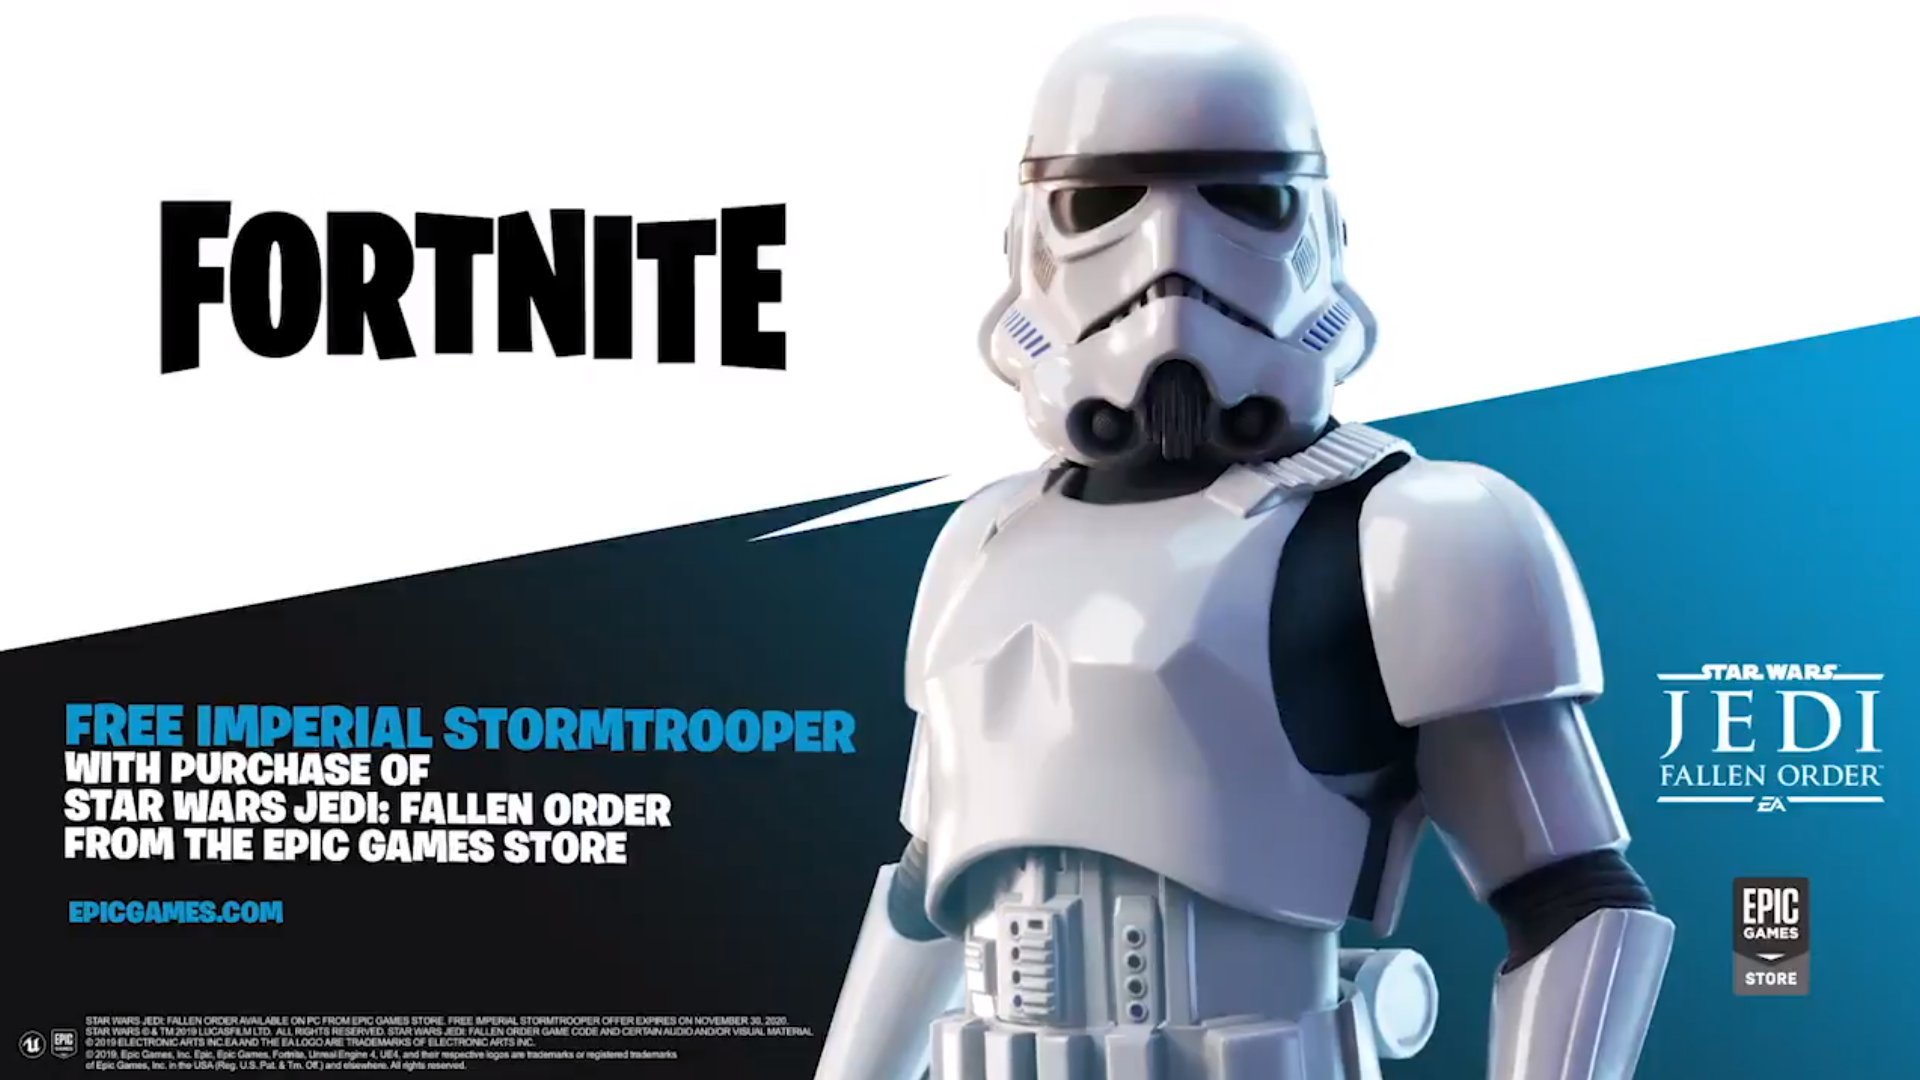 Lucas7yoshi Fortnite Leaks On Twitter Purchasing Star Wars Jedi Fallen Order In The Epic Games Store Will Grant You The Skin For Free Use This Link To Support Me Or Enter